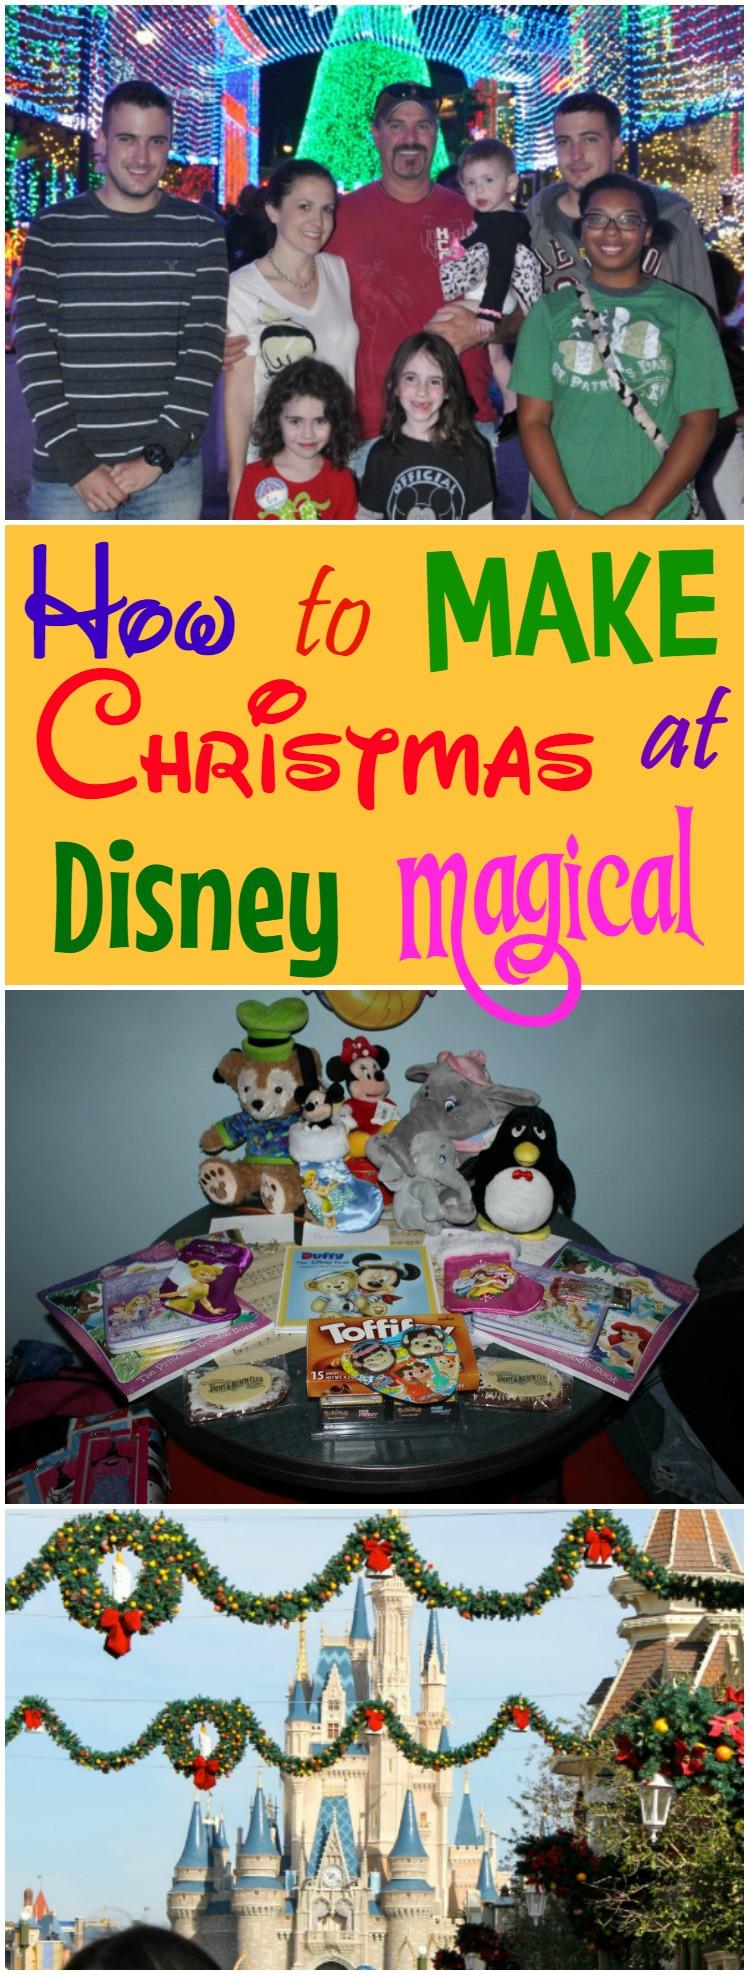 How to make Christmas at Walt Disney World magical with your family